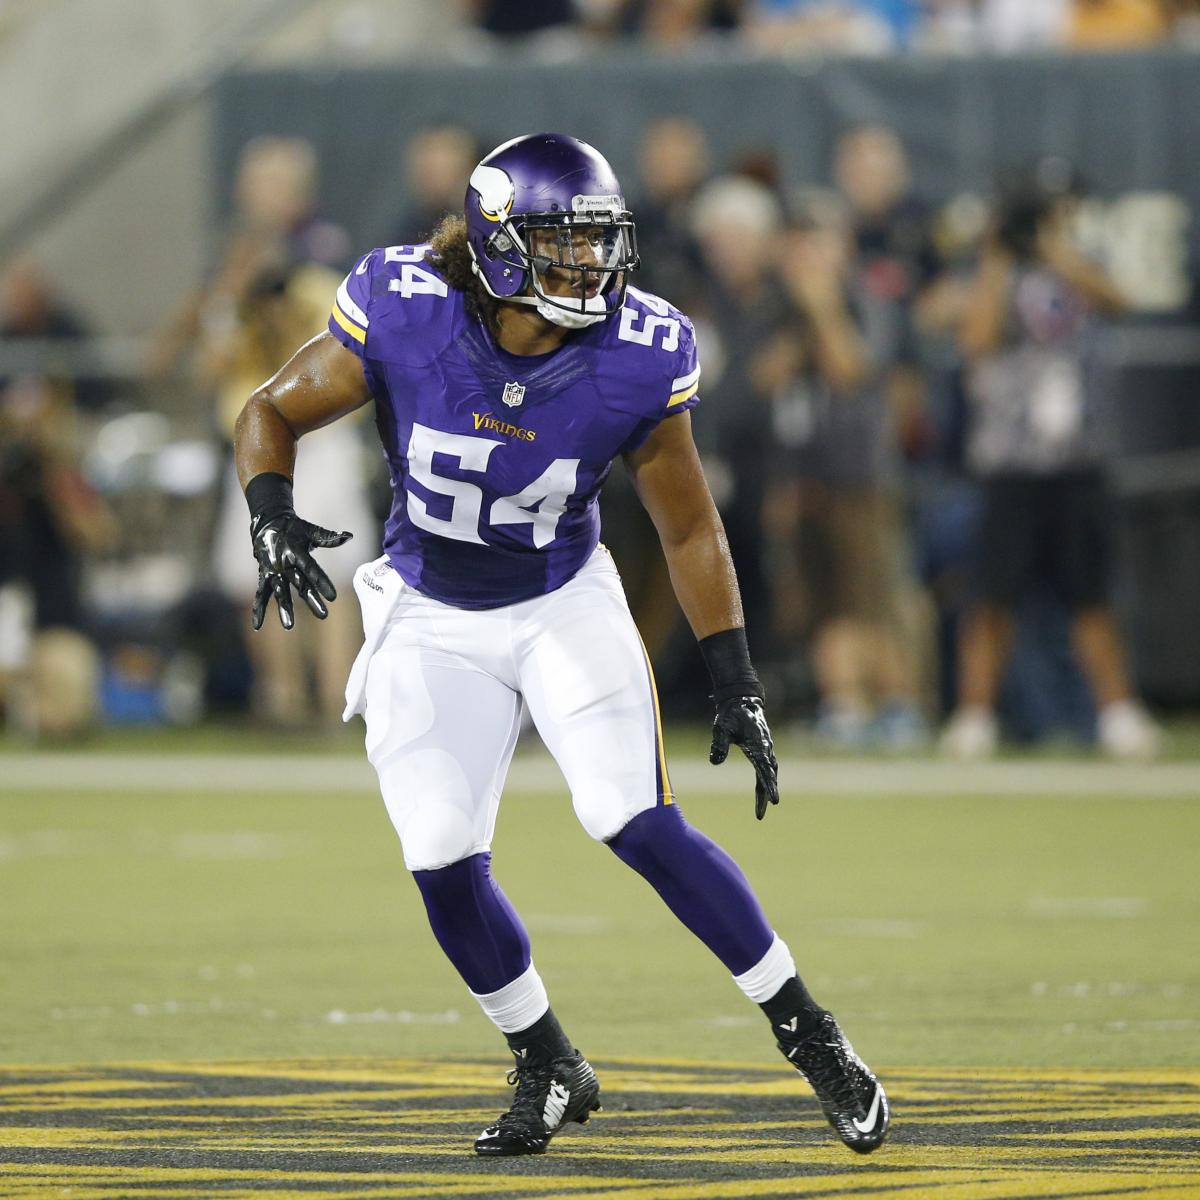 943aaabbe70 Eric Kendricks Injury: Updates on Vikings LB's Concussion, Hip and Return    Bleacher Report   Latest News, Videos and Highlights